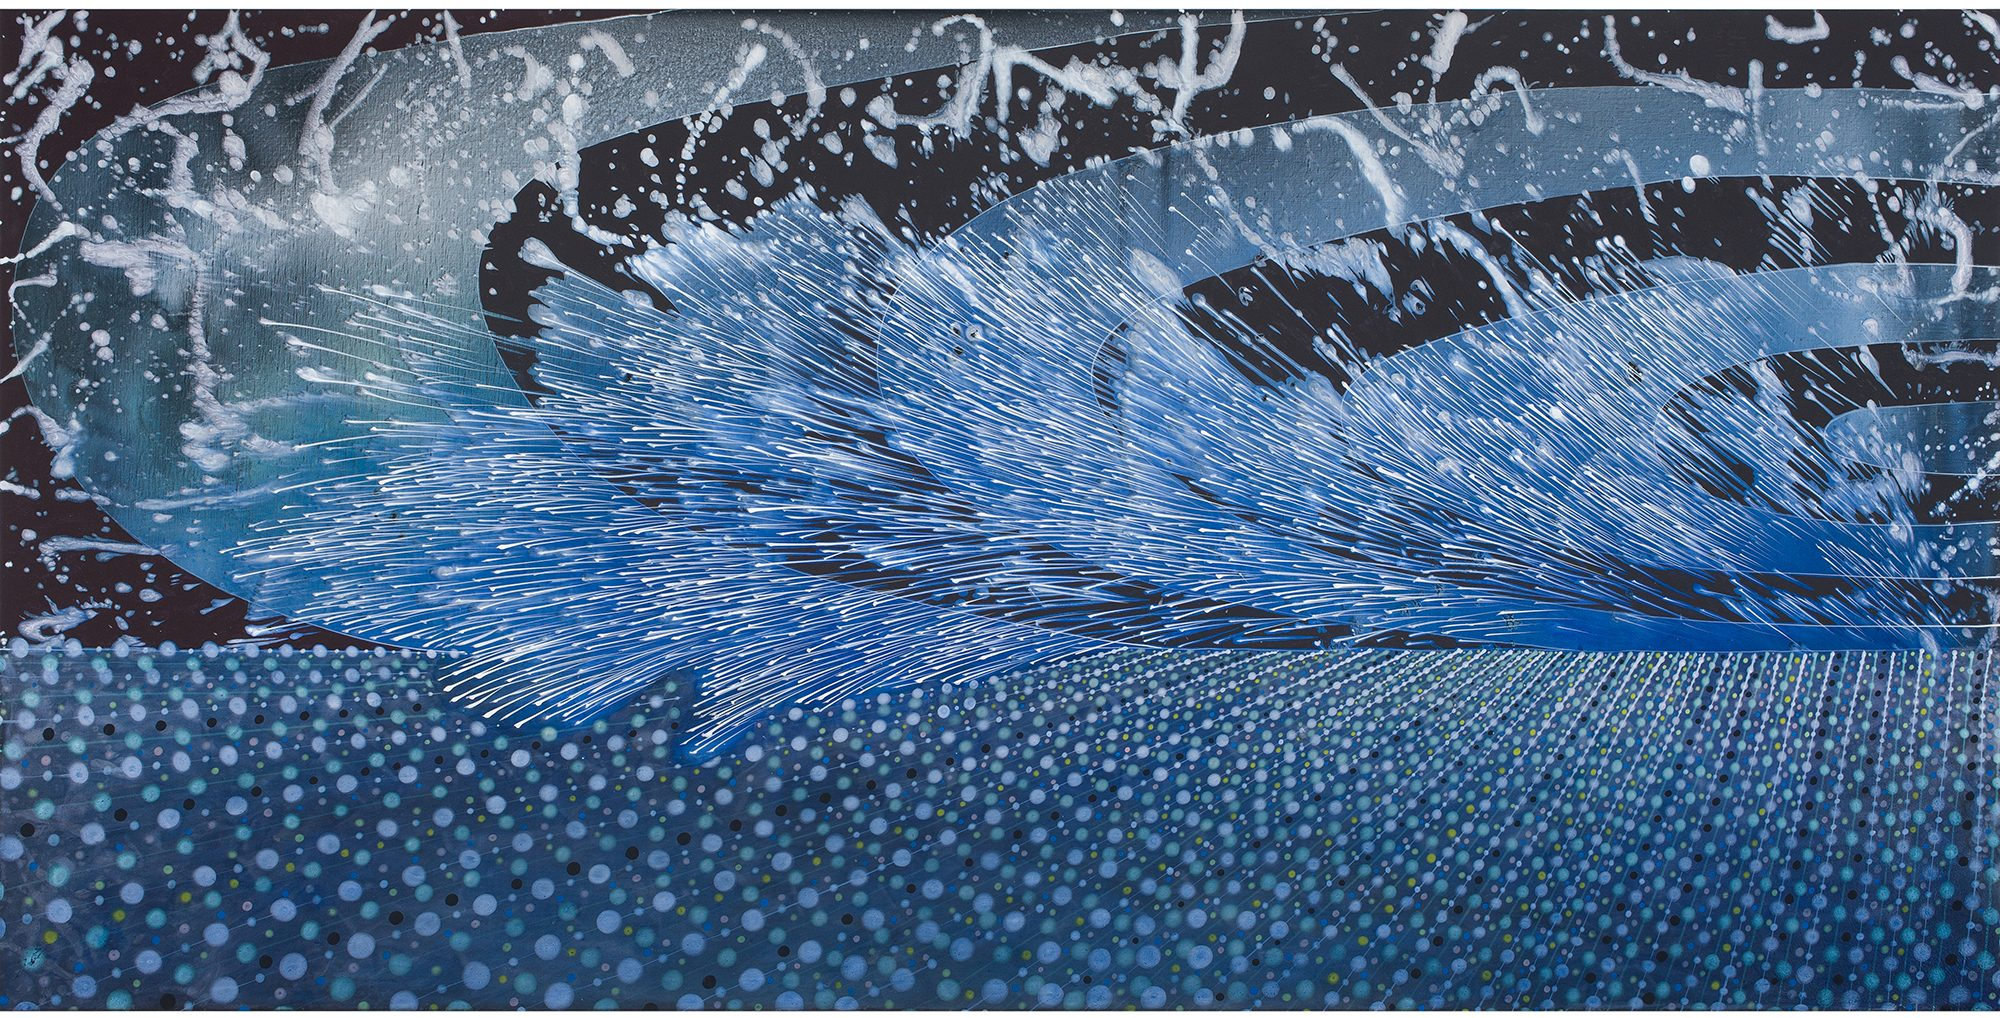 Barbara Takenaga (American, b. 1949) Two Waves, 2013. Acrylic on linen, 36 x 72 in. Private collection